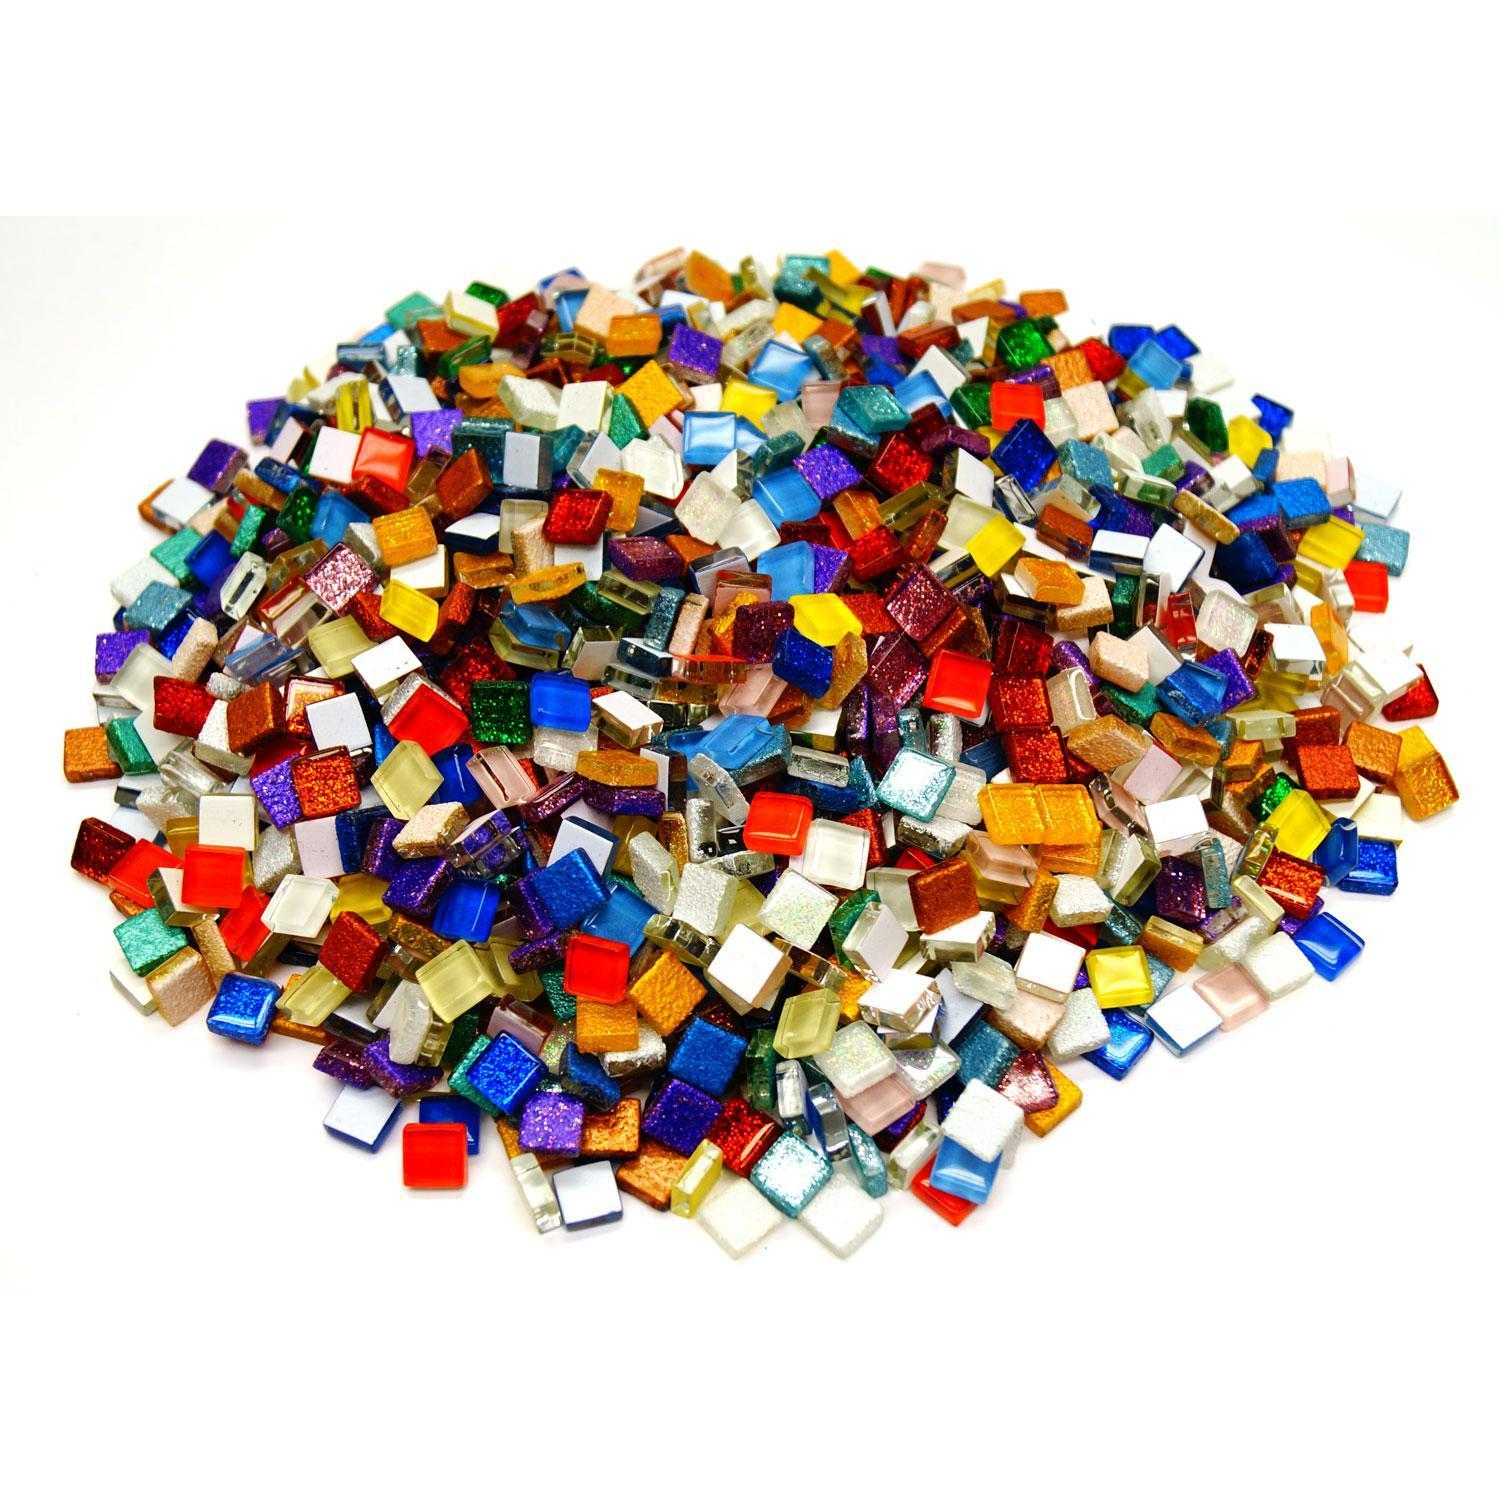 3/8 Cobblestone Tile Mega Mix - 3 lb